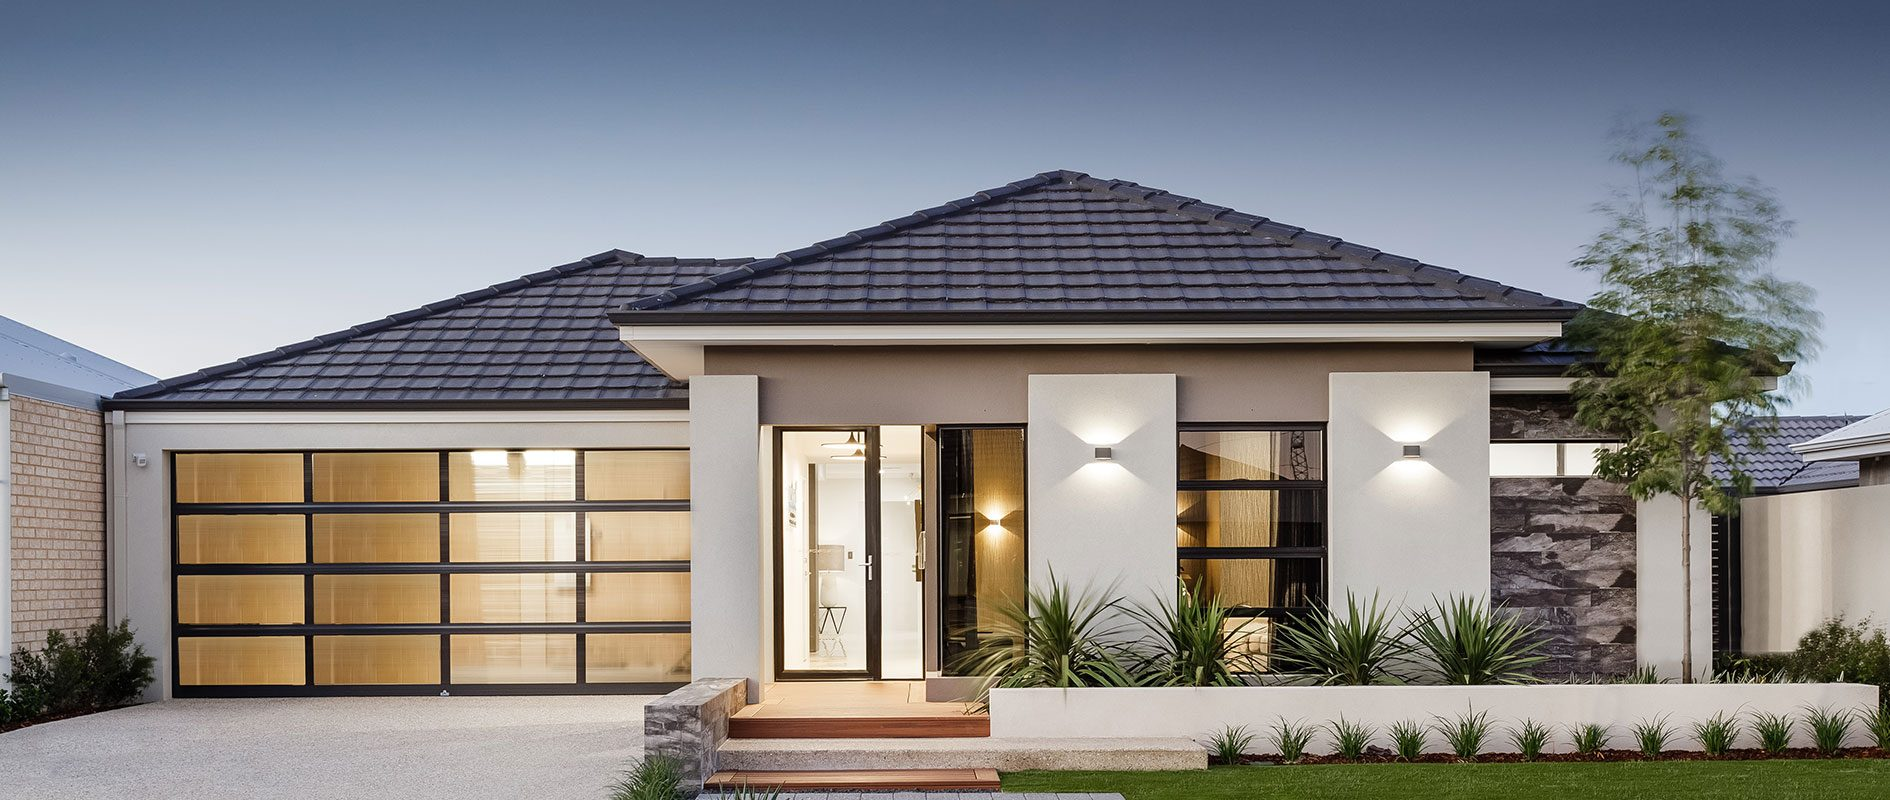 Display home perth single storey home ventura homes the decadence malvernweather Gallery